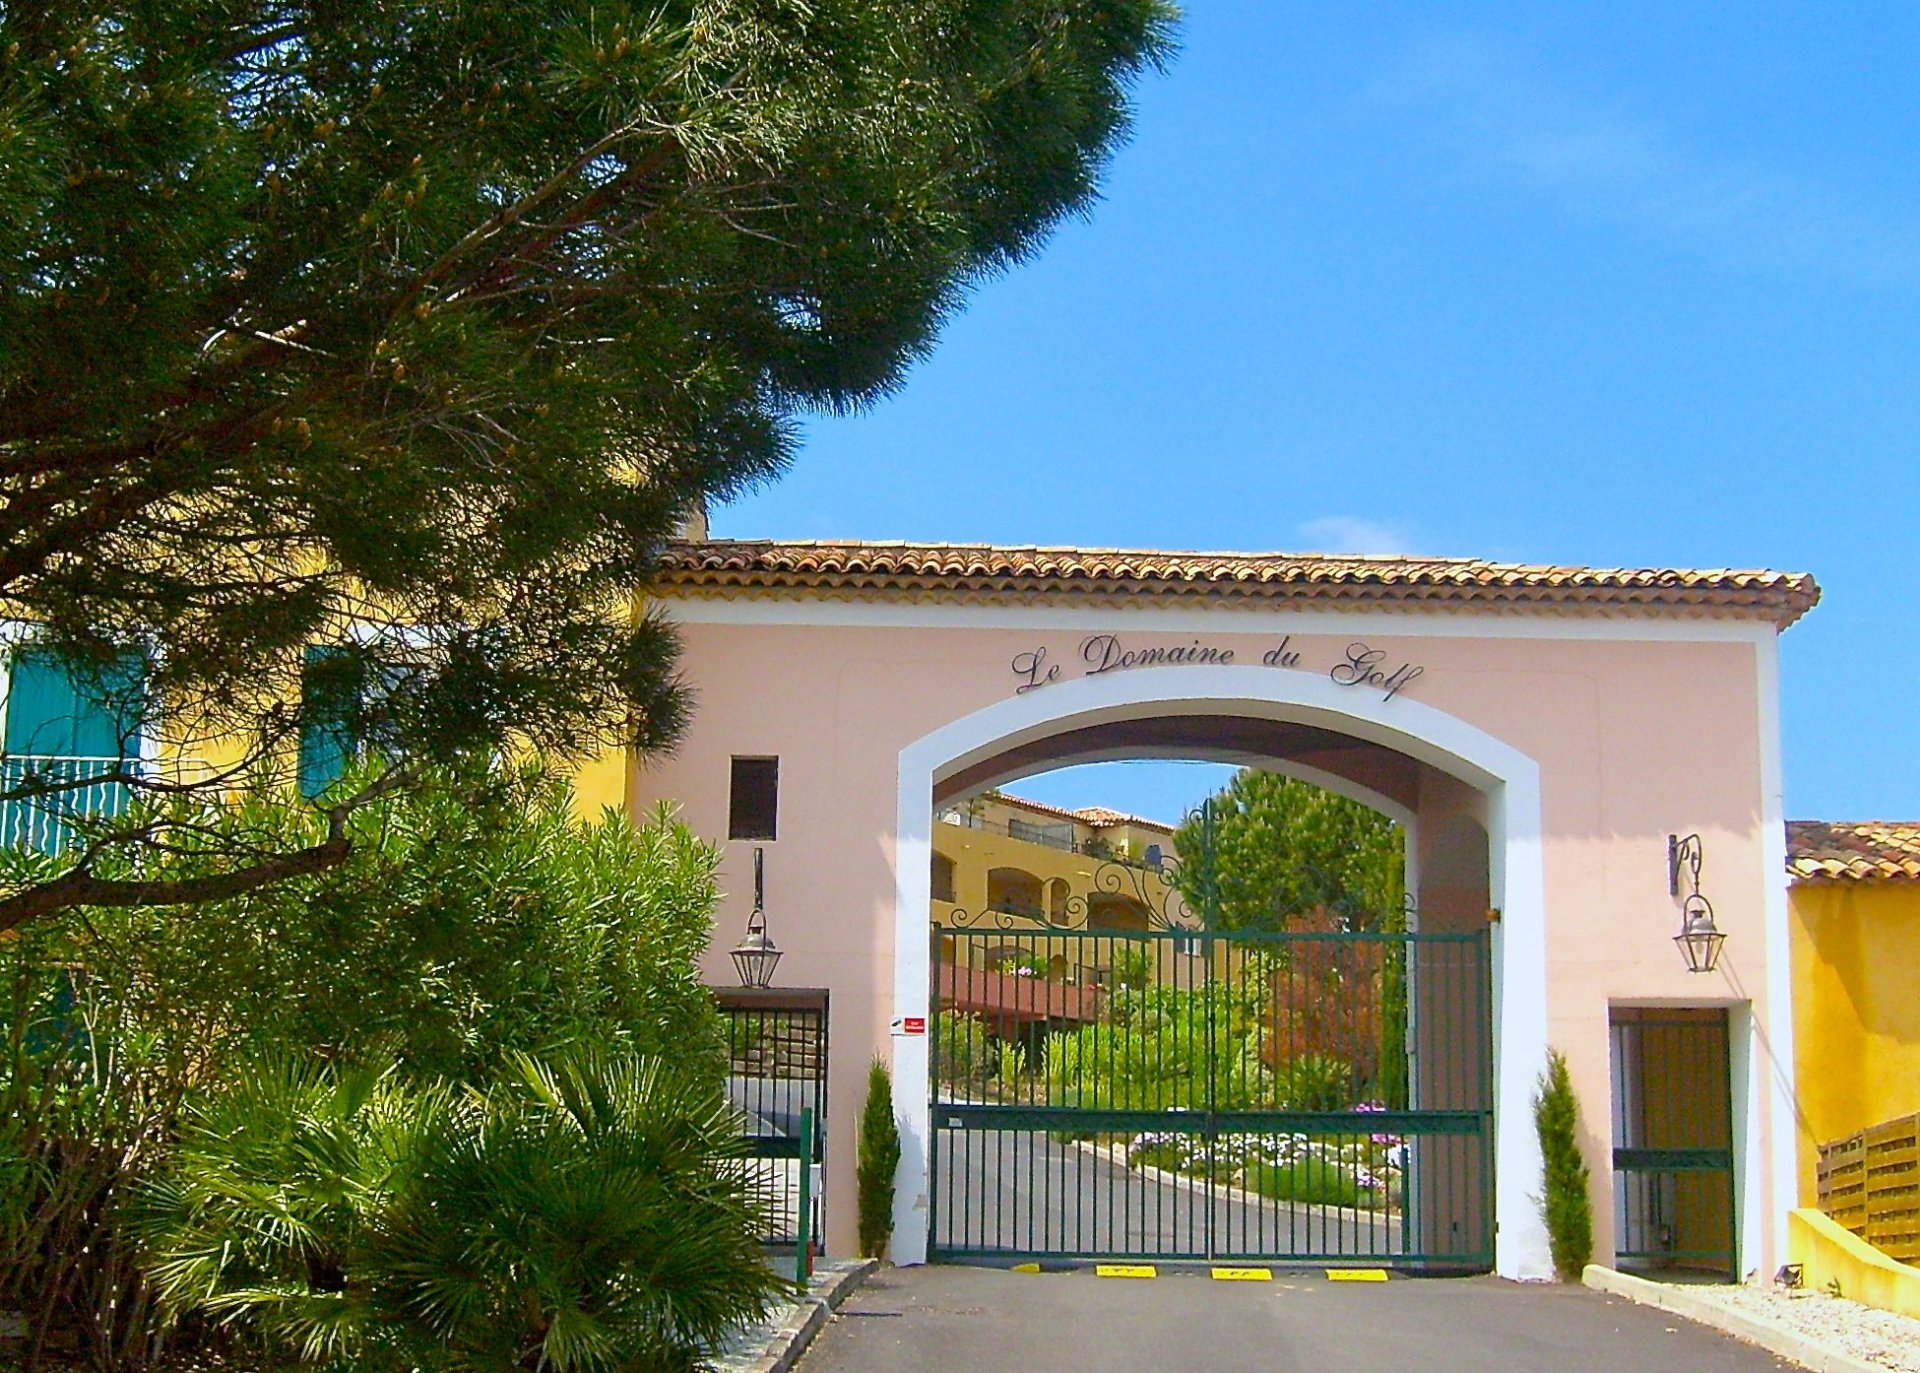 Roquebrune/s Argens, Villa -4 bedrooms -90m2- in luxury domaine, with pool & tennis